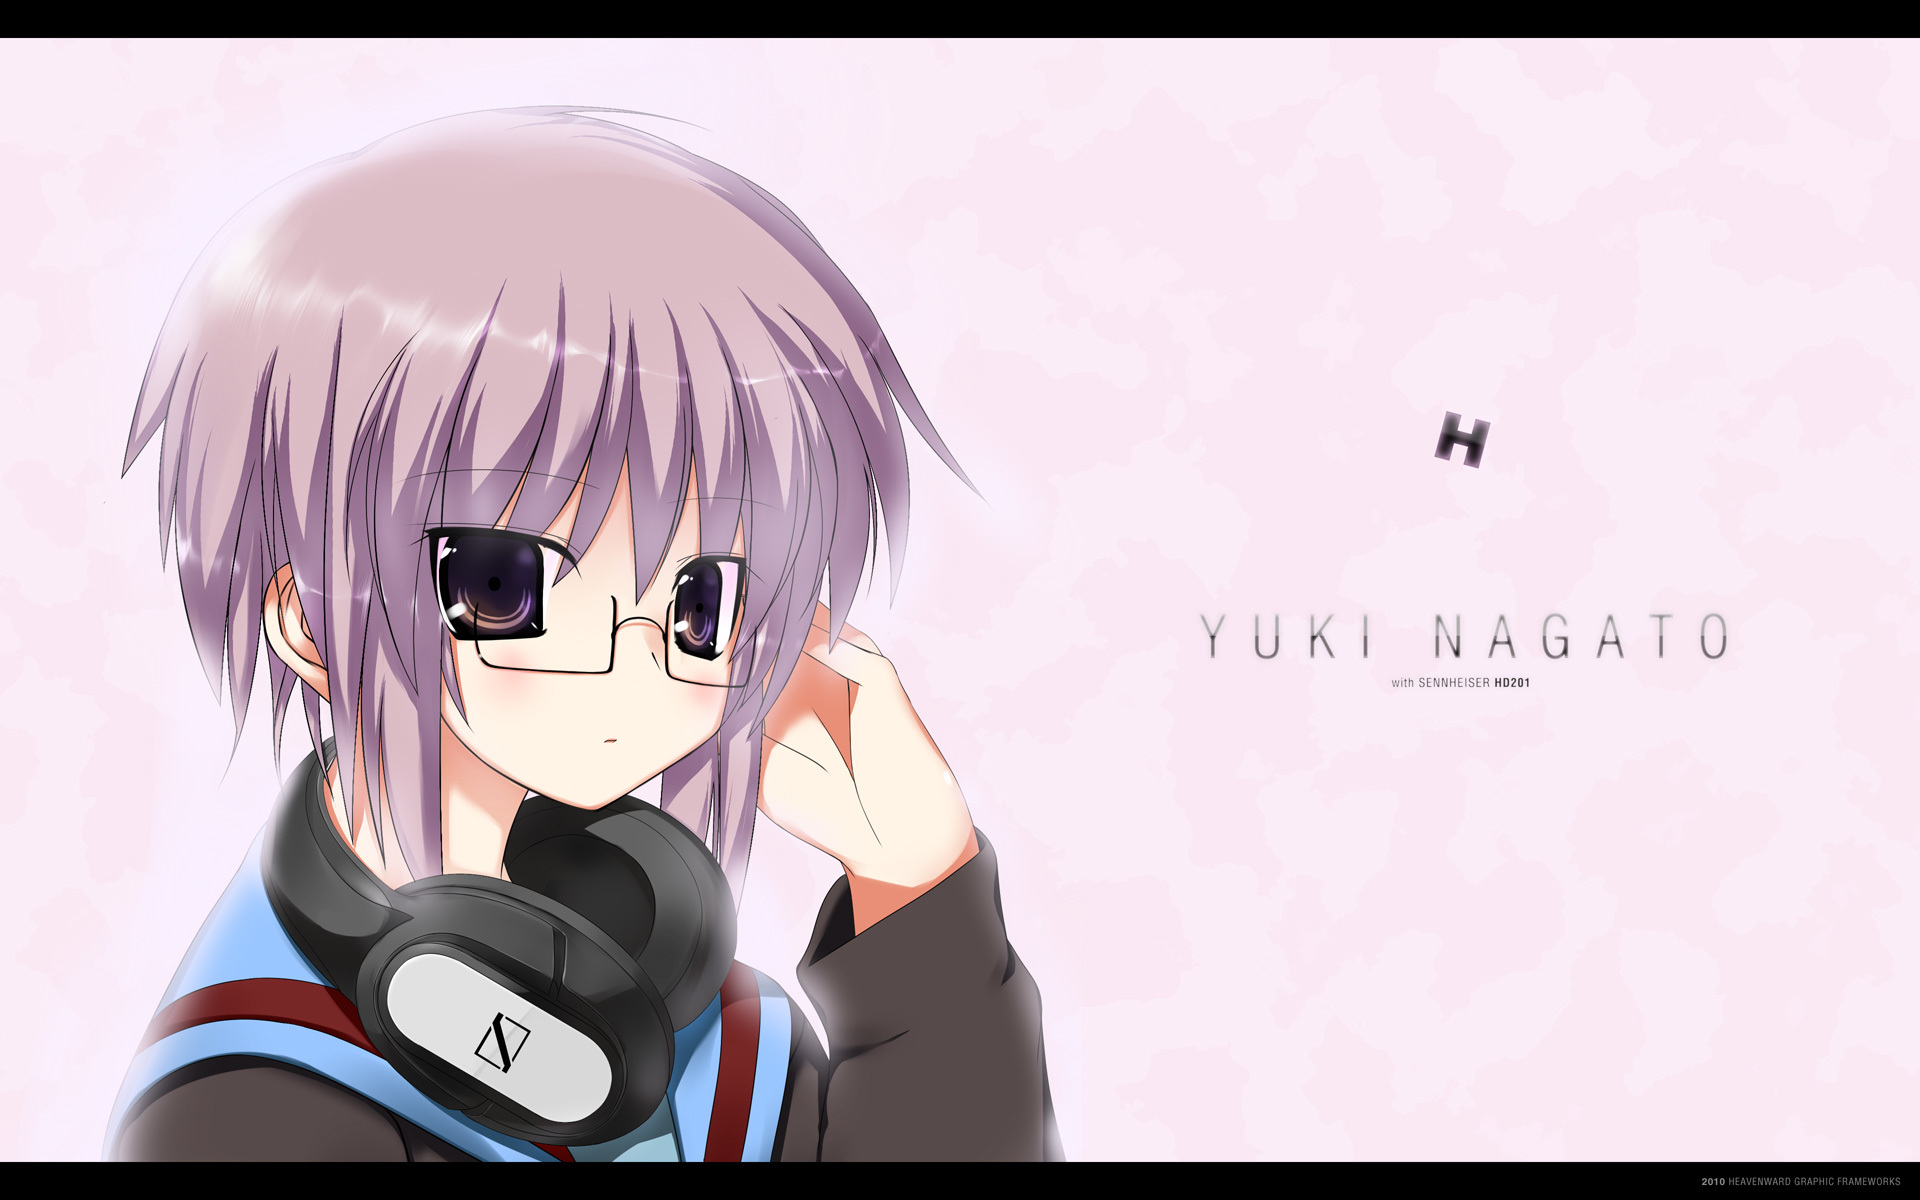 nagato yuki The melancholy HD Wallpaper